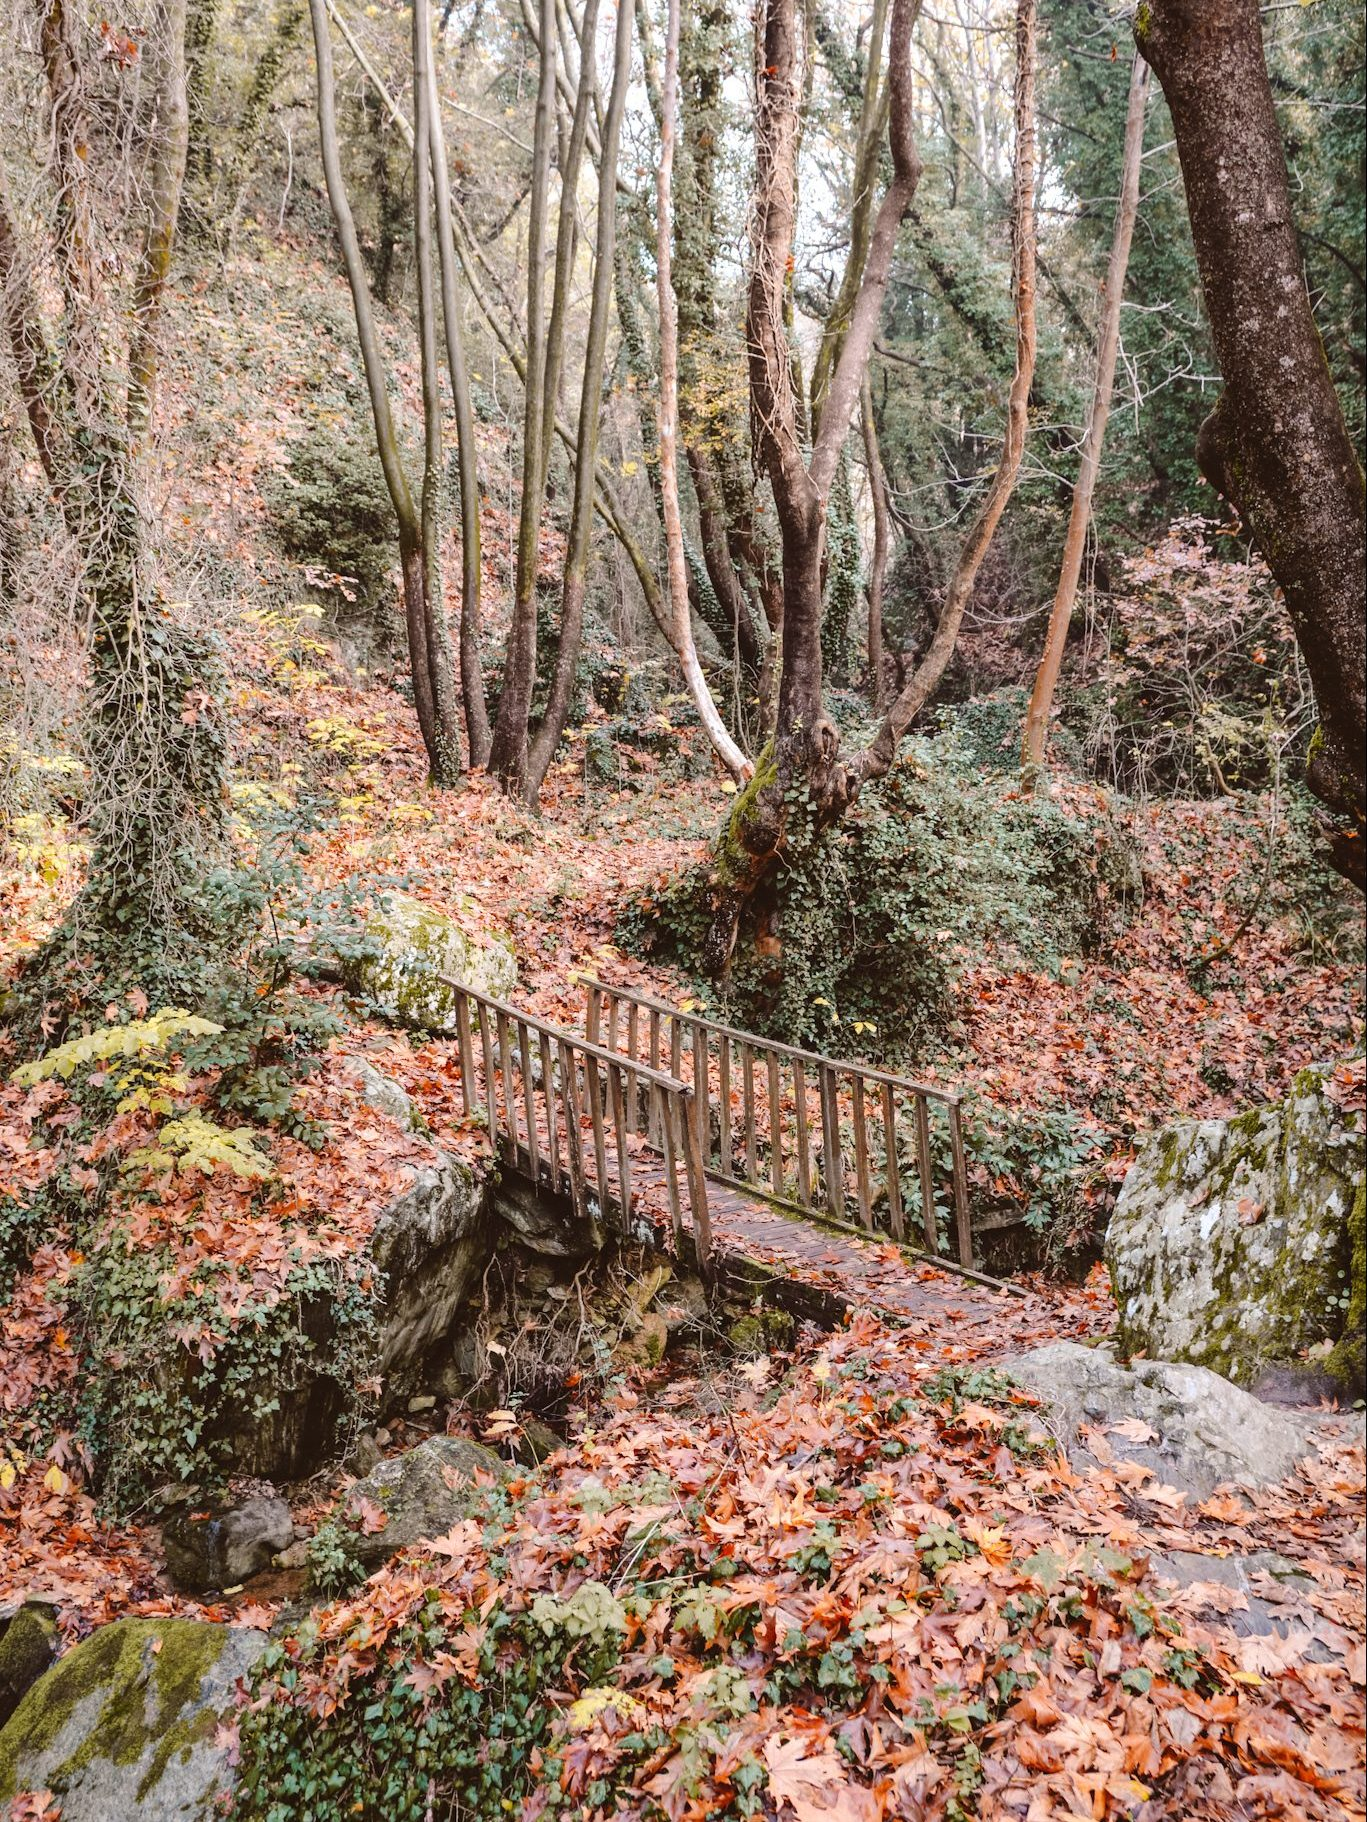 Exploring Centaur's Path in Pelion near Volos